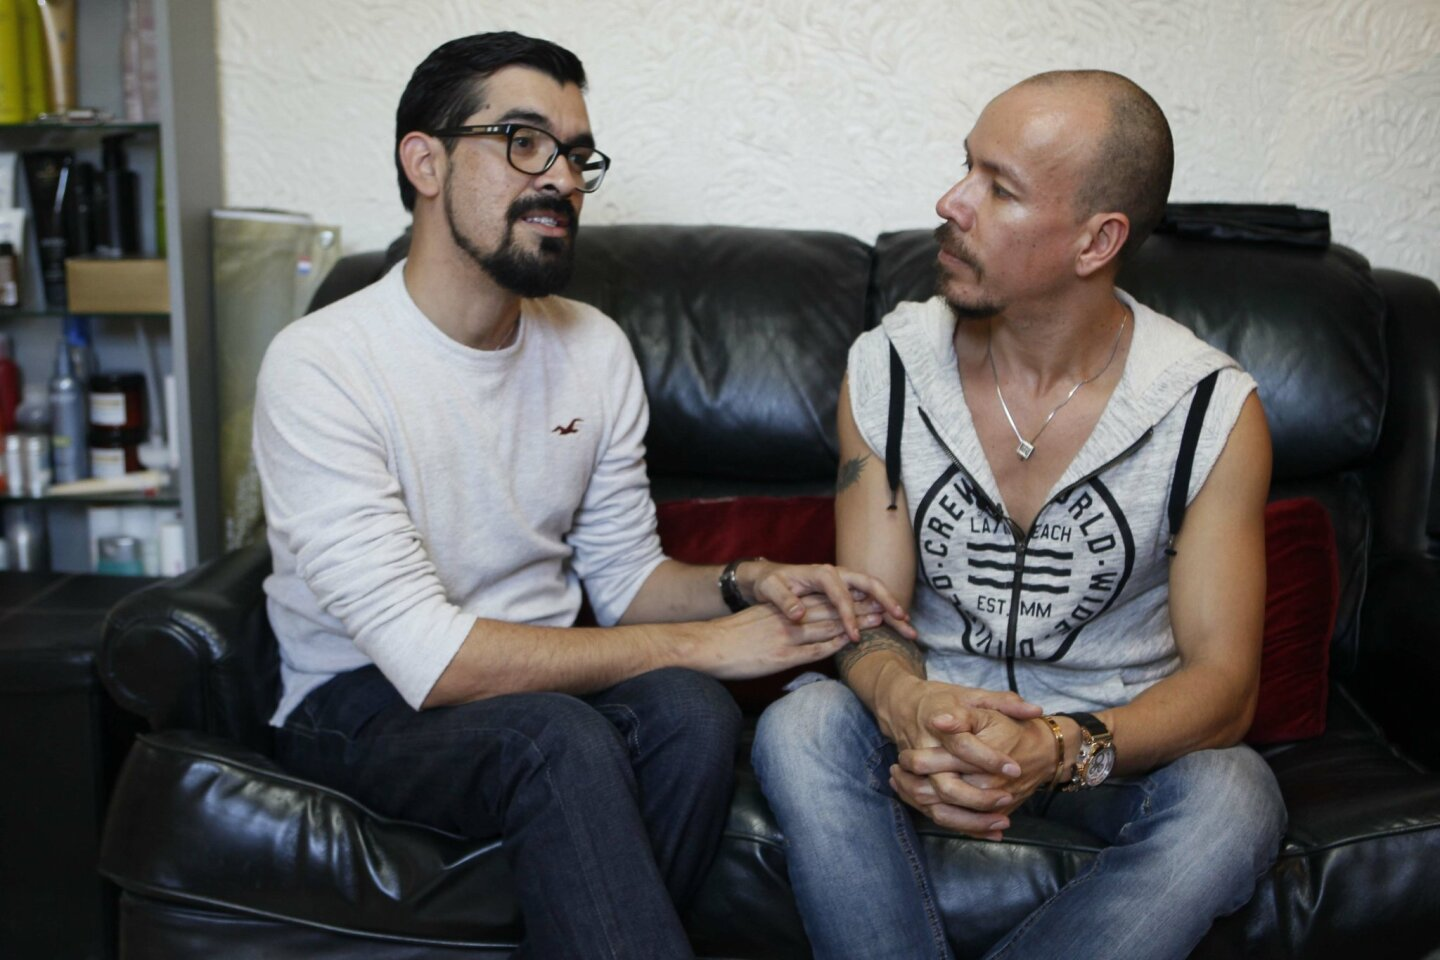 Gay couple denied wedding vows in Mexicali